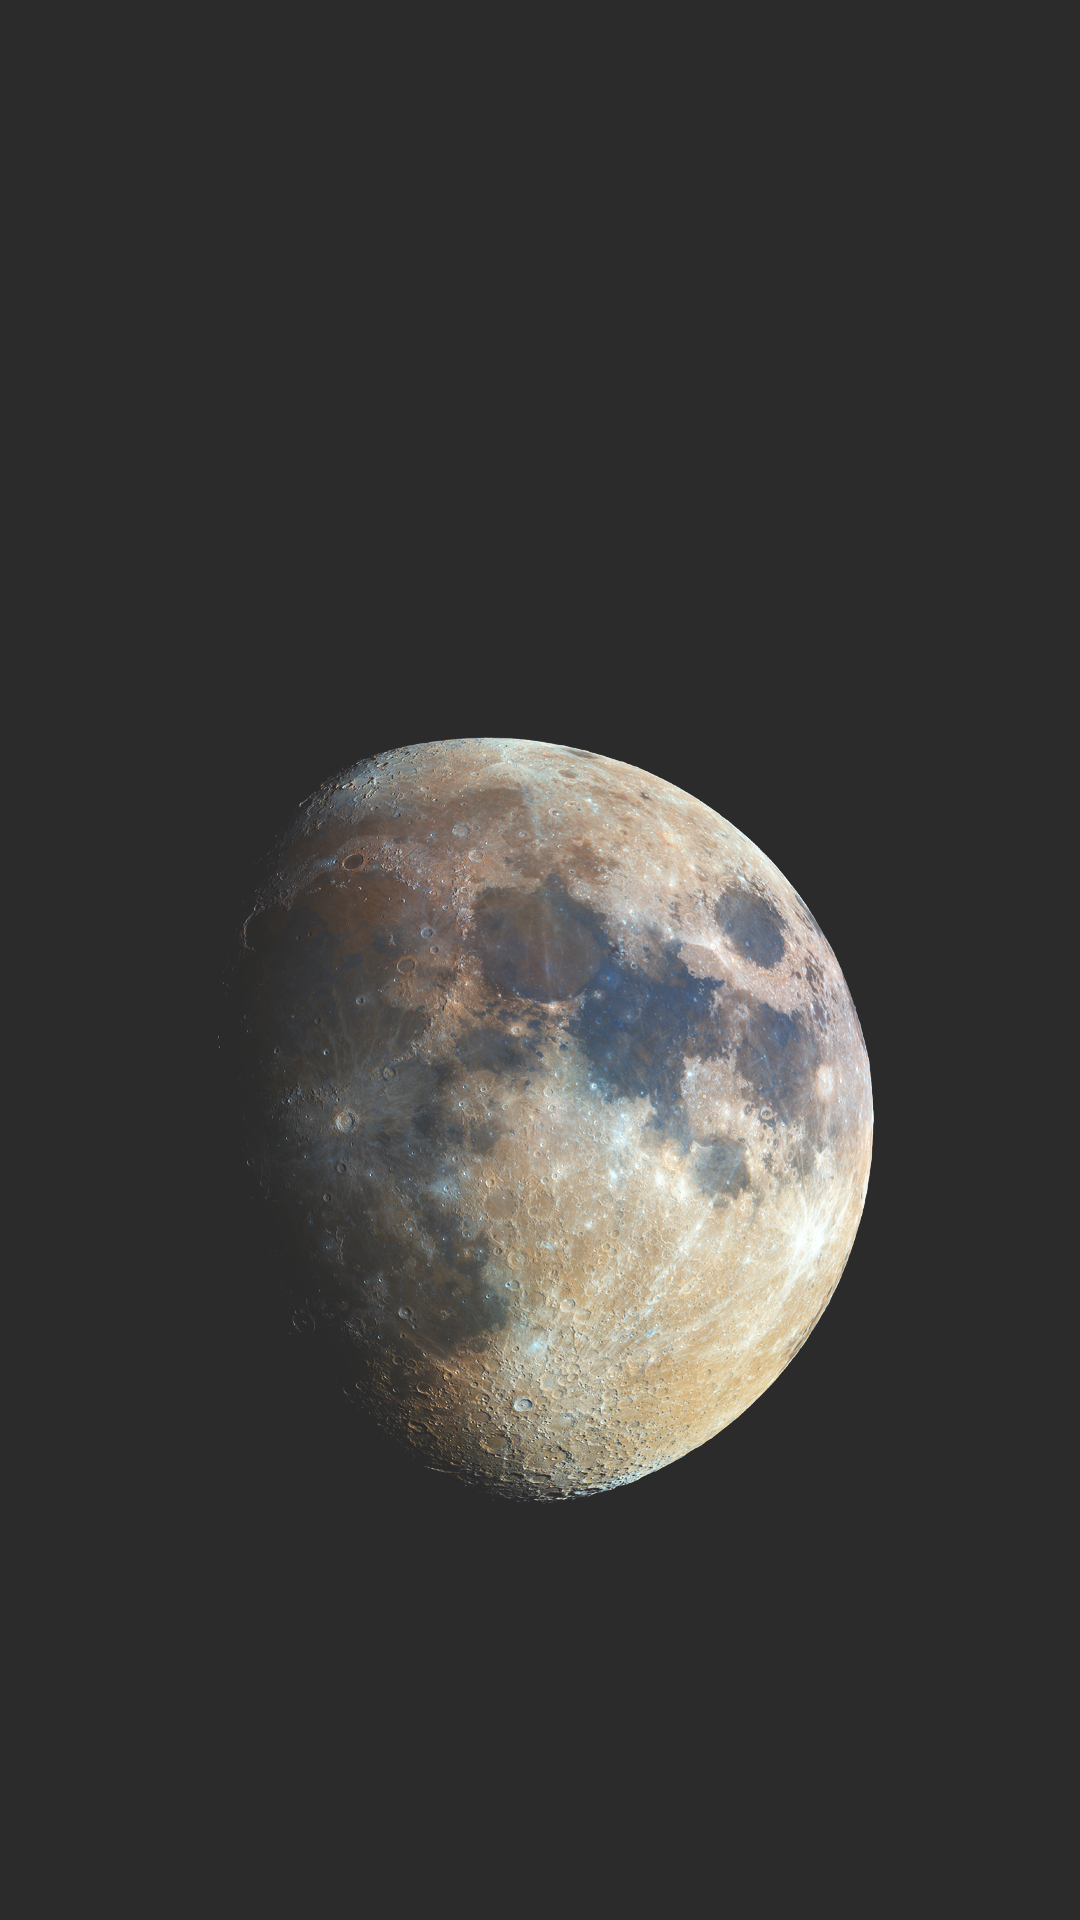 1080x1920 Moon Need Iphone 6s Plus Wallpaper Background For